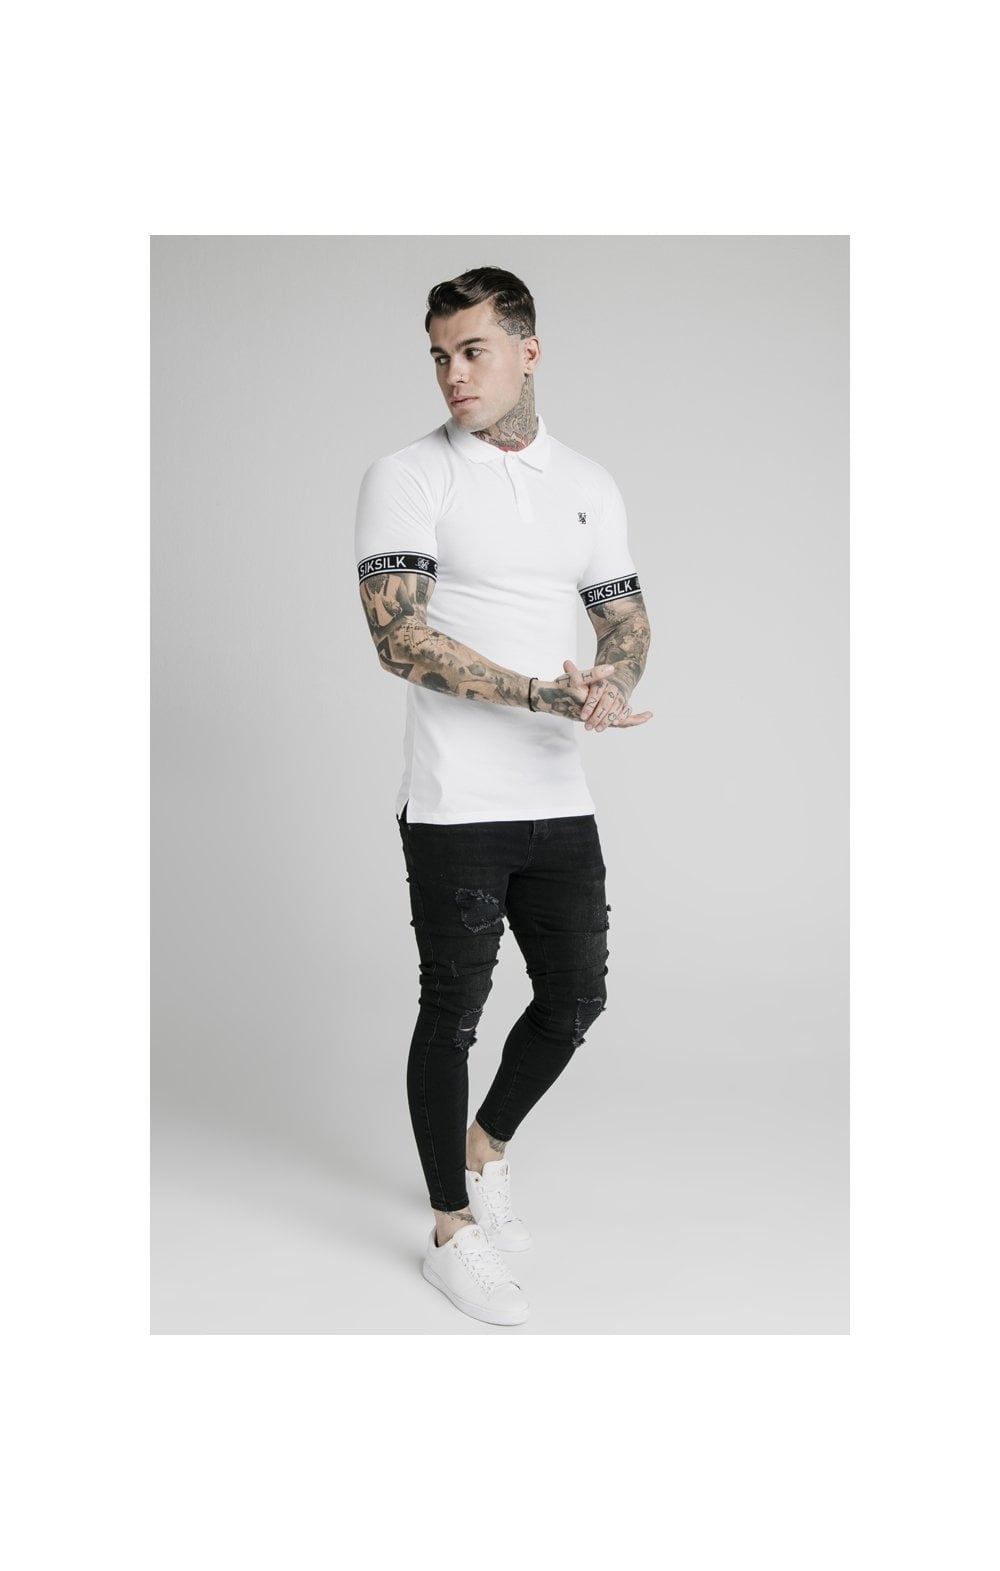 SikSilk S/S Tech Polo Tee - White (3)